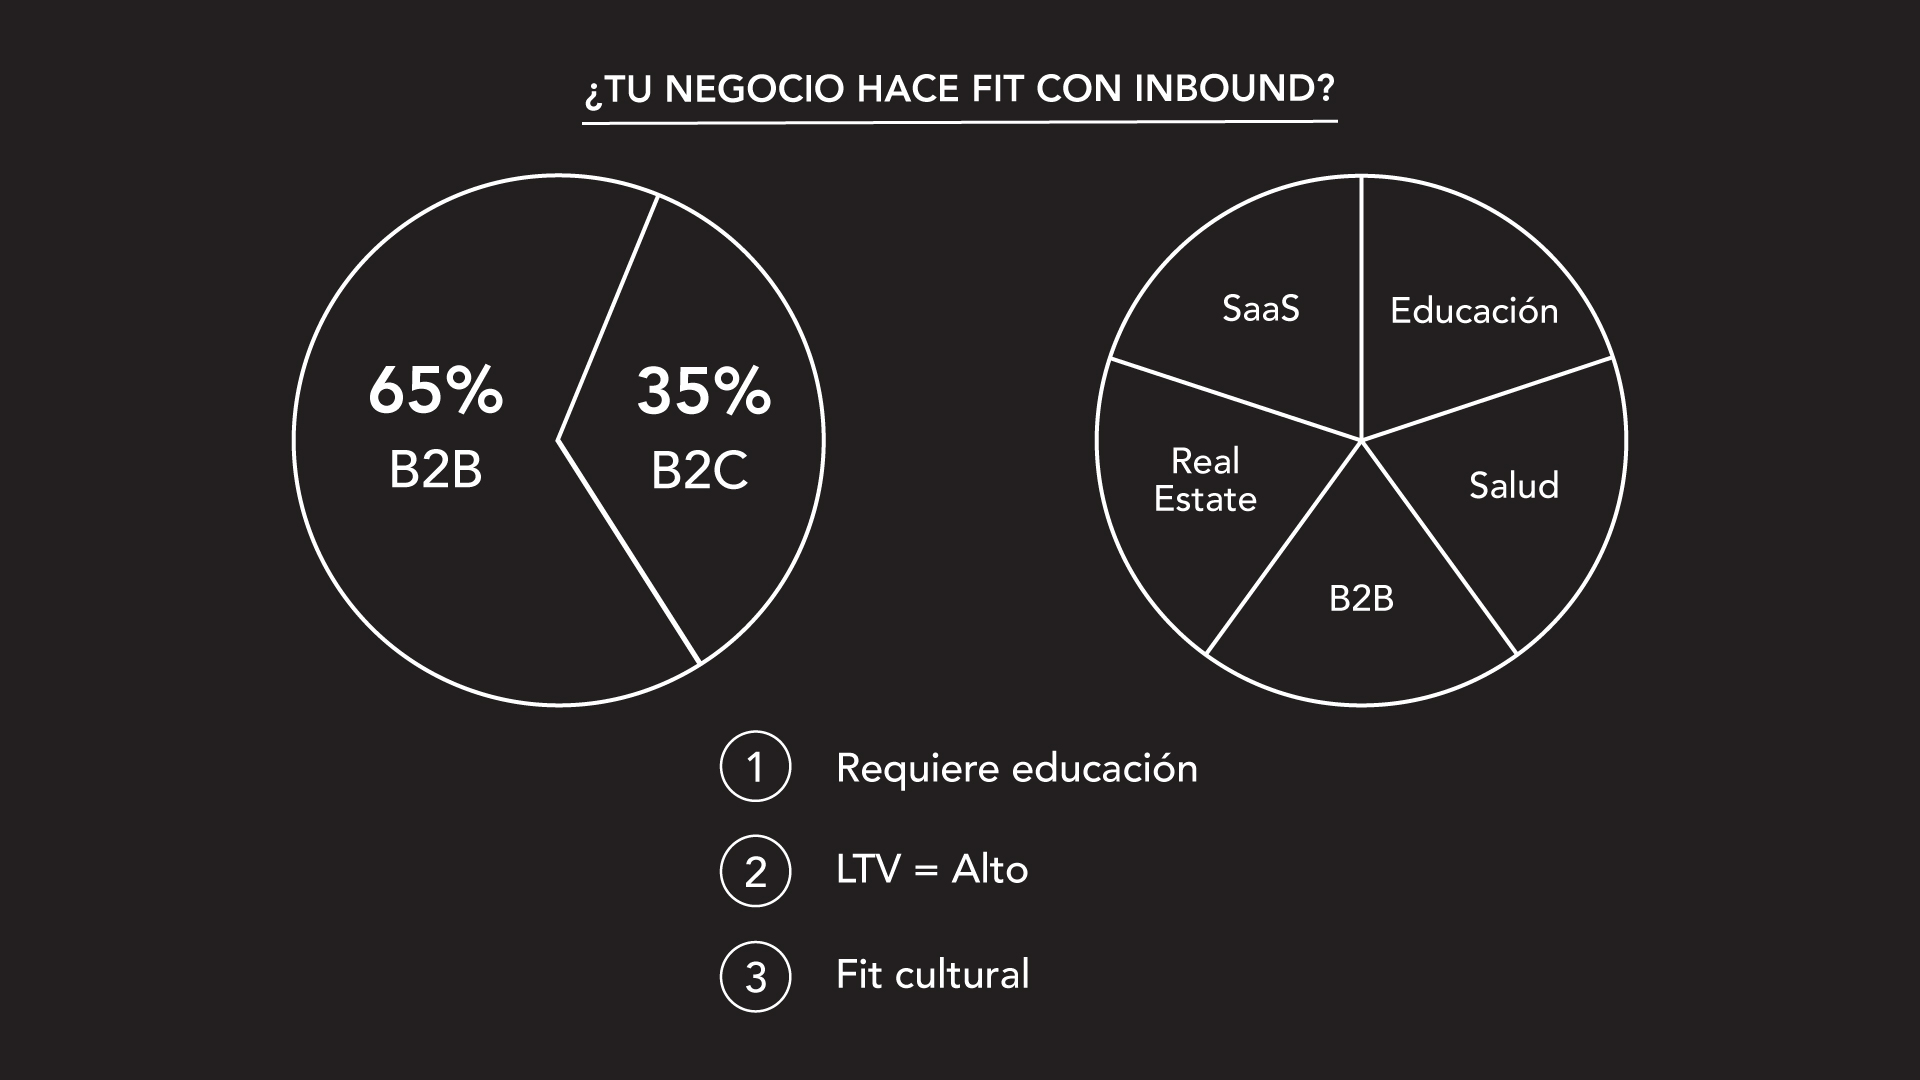 ¿Tu empresa o industria encaja con Inbound Marketing? [video]